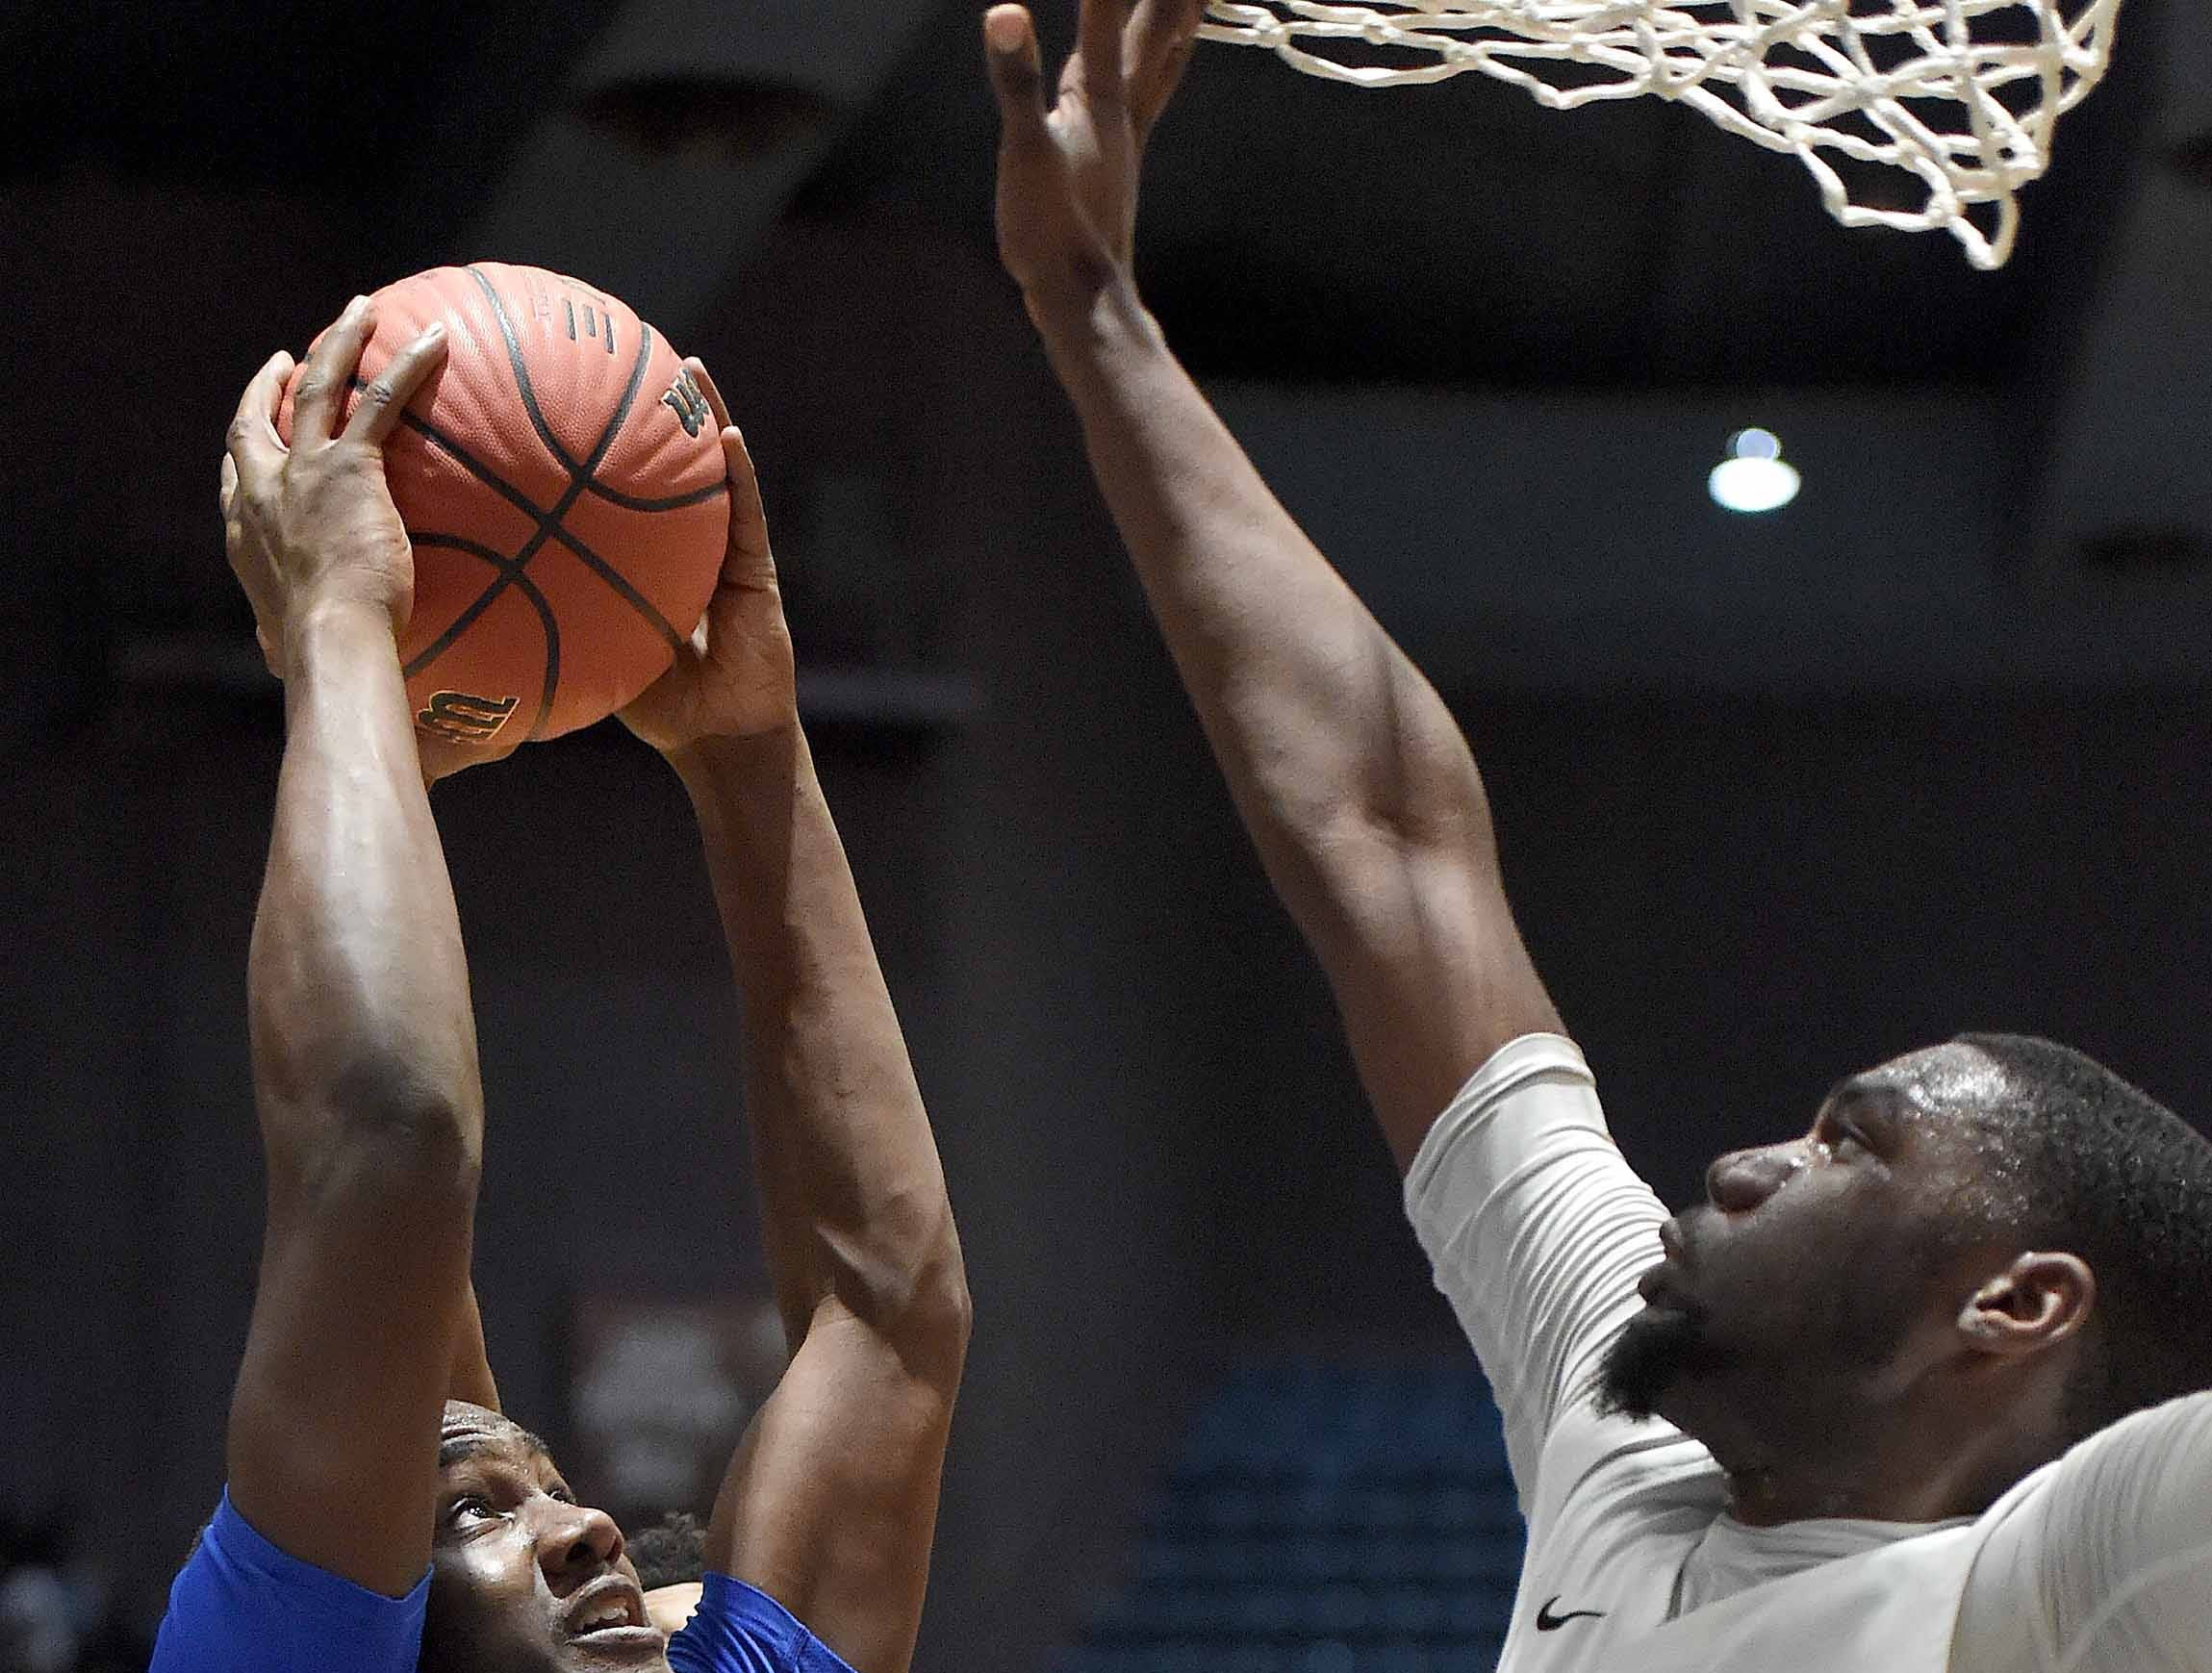 Velma Jackson's Charlie Jones (13) rebounds against Holly Springs' Deveon Miller (22) in the finals of the MHSAA C Spire State Basketball Championships at the Mississippi Coliseum in Jackson, Miss., on Saturday, March 9, 2019.